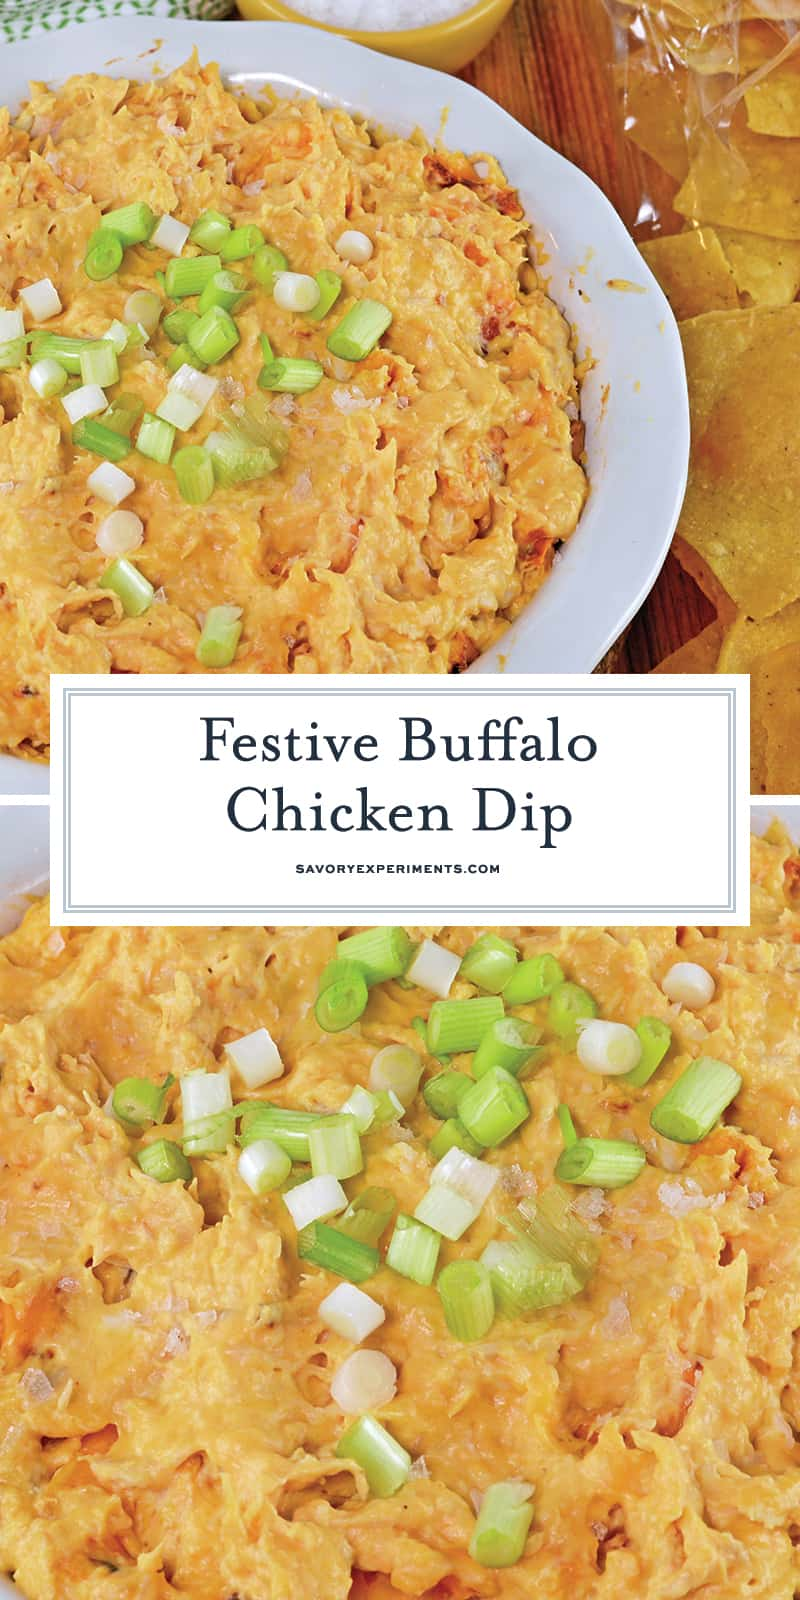 Buffalo Chicken Dip is a quick and easy appetizer that will work for any party! This an amazing buffalo chicken recipe that will only take 30 minutes to make! #buffalochickendiprecipe #buffalochickenrecipes www.savoryexperiments.com